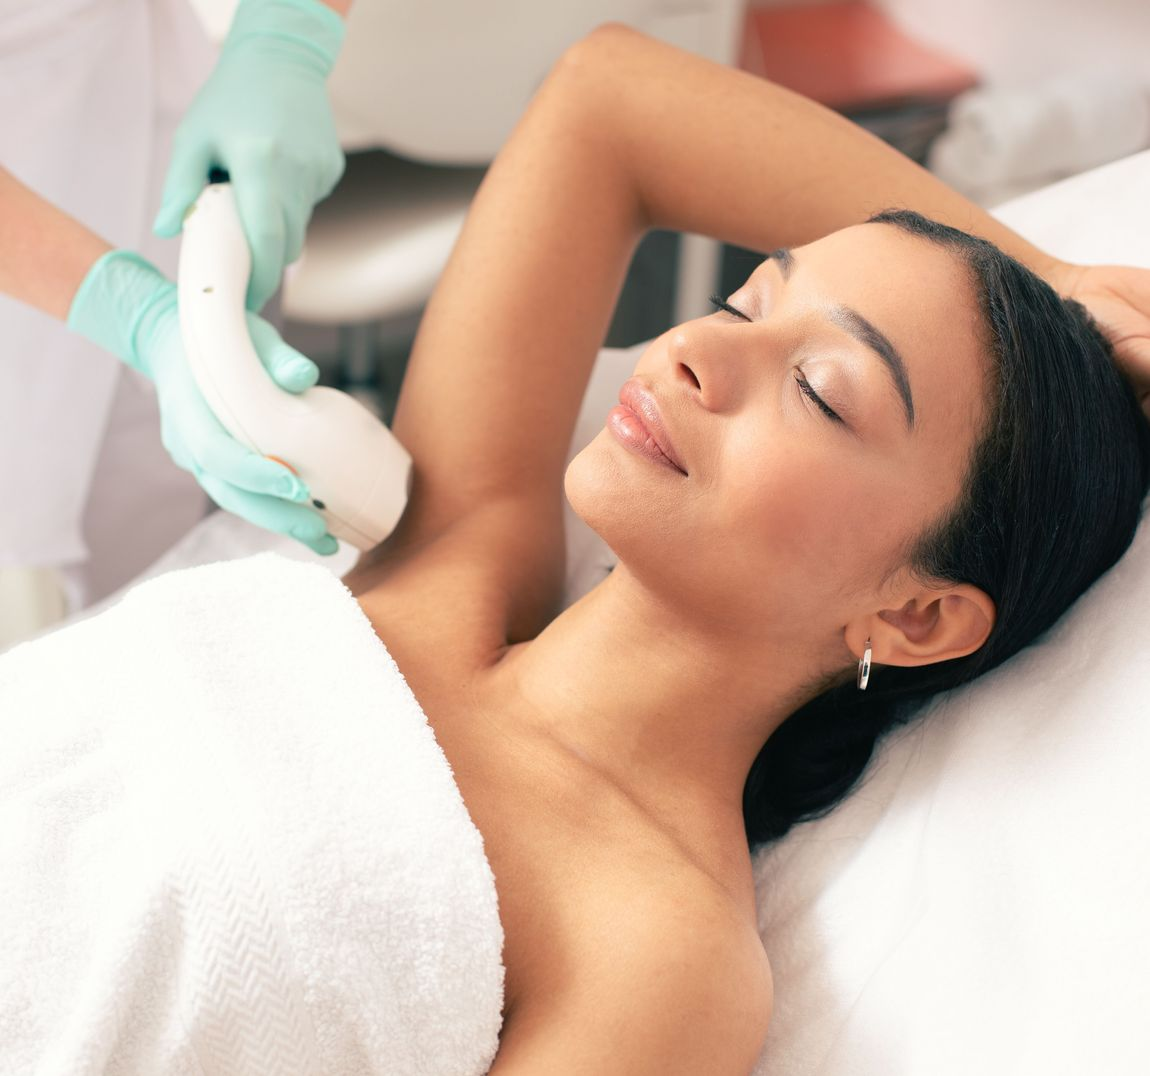 Woman receiving laser hair removal treatments